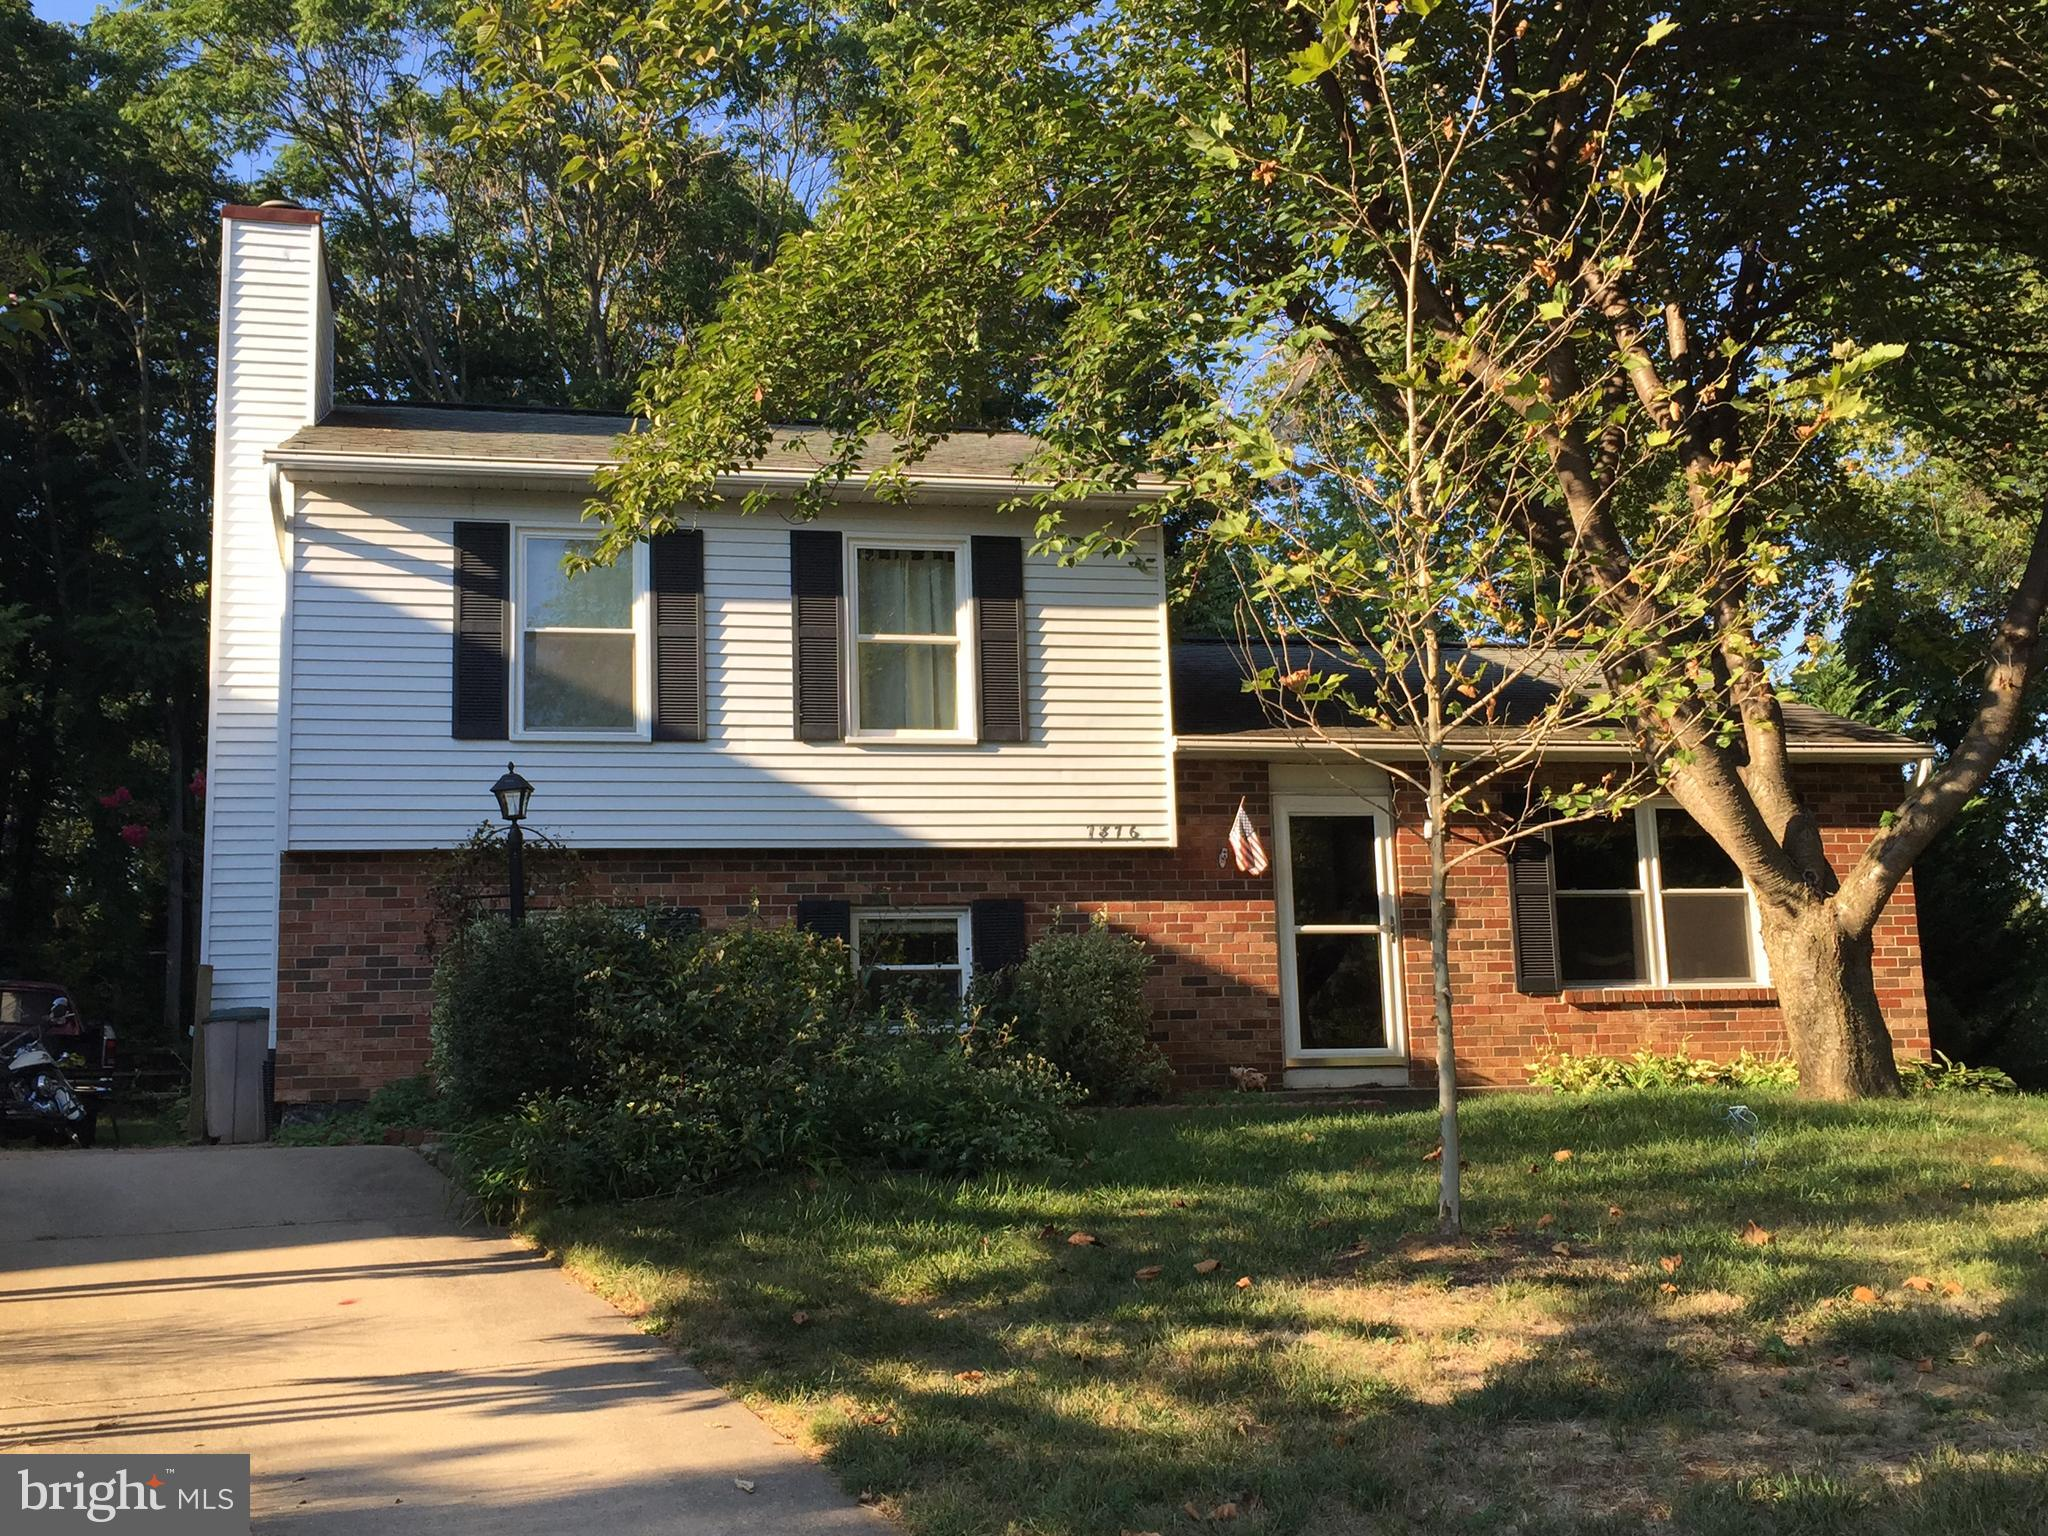 7876 SAVAGE GUILFORD ROAD, JESSUP, MD 20794